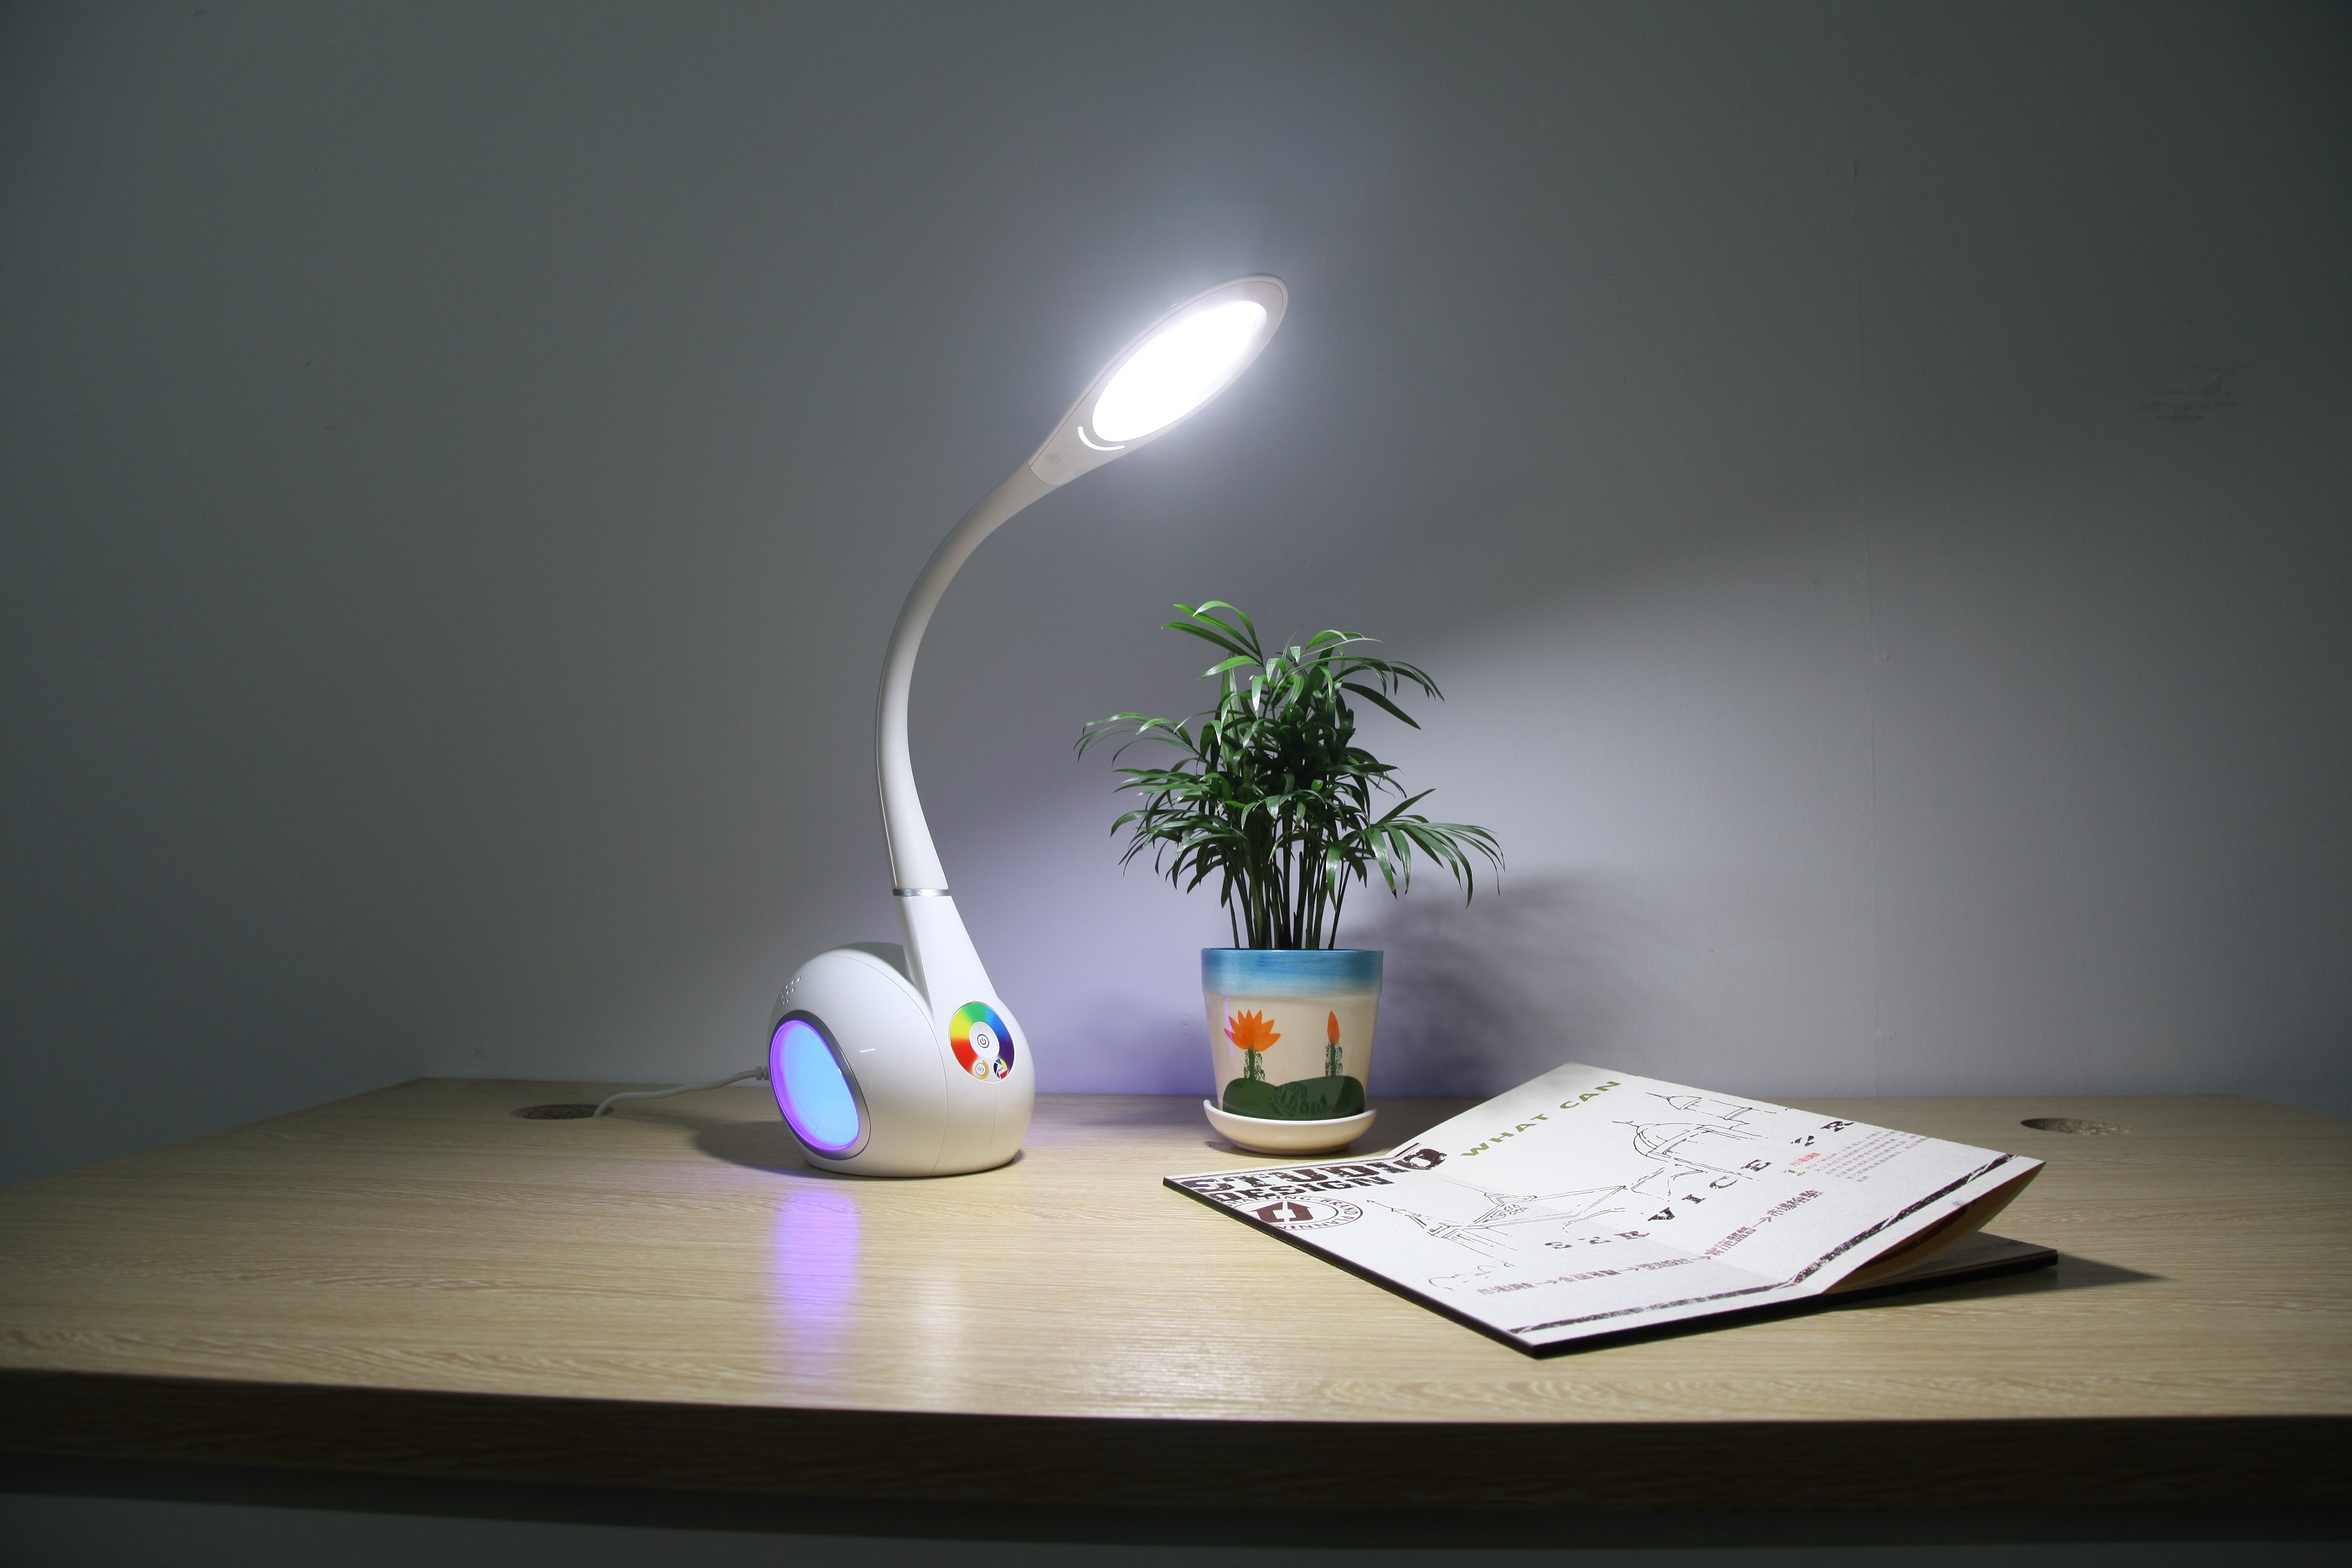 Swan Led Table Lamp With Color Changing Base Flexible Led Table Lamp Led Table Lamp With Night